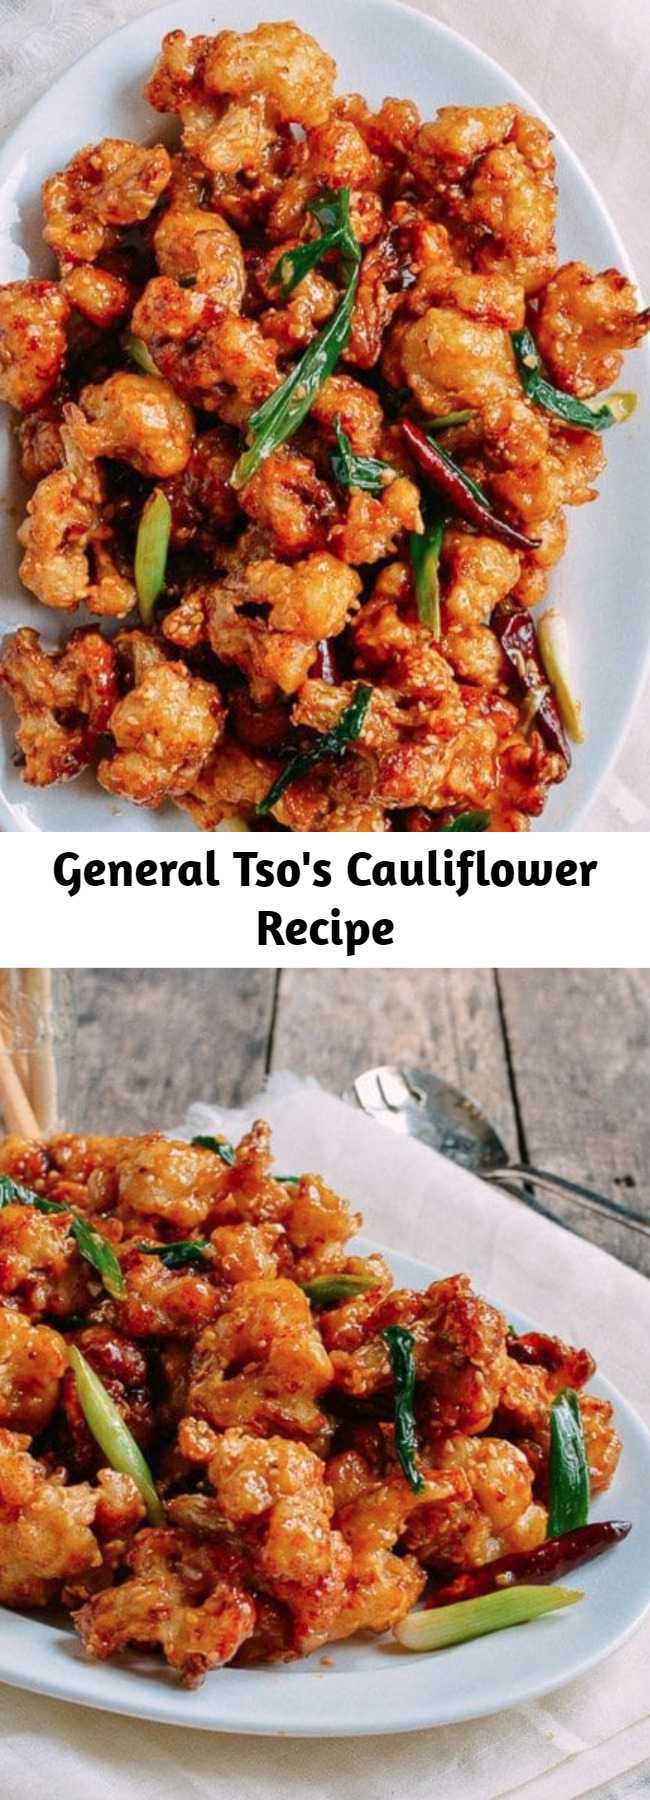 General Tso's Cauliflower Recipe - General Tso's cauliflower is the vegetarian version of the beloved Chinese American dish, General Tso's Chicken. Our General Tso's cauliflower is as good as the original. It's crispy, super tasty, and might just be better than the chicken version!